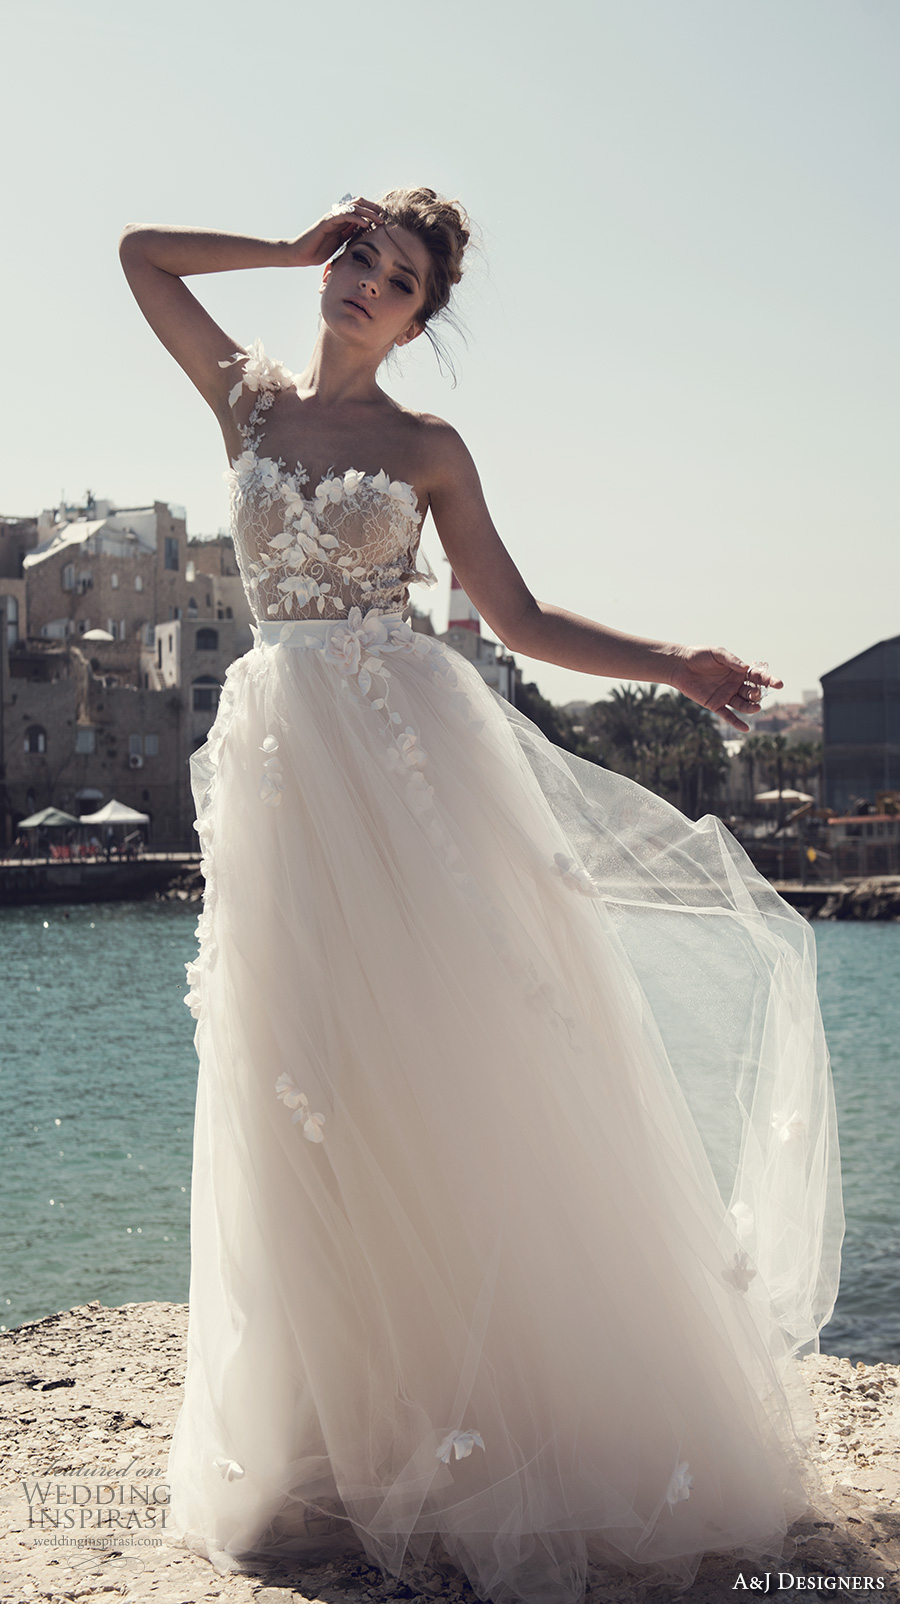 Us wedding dresses designers wedding dresses in redlands for Affordable wedding dress designers